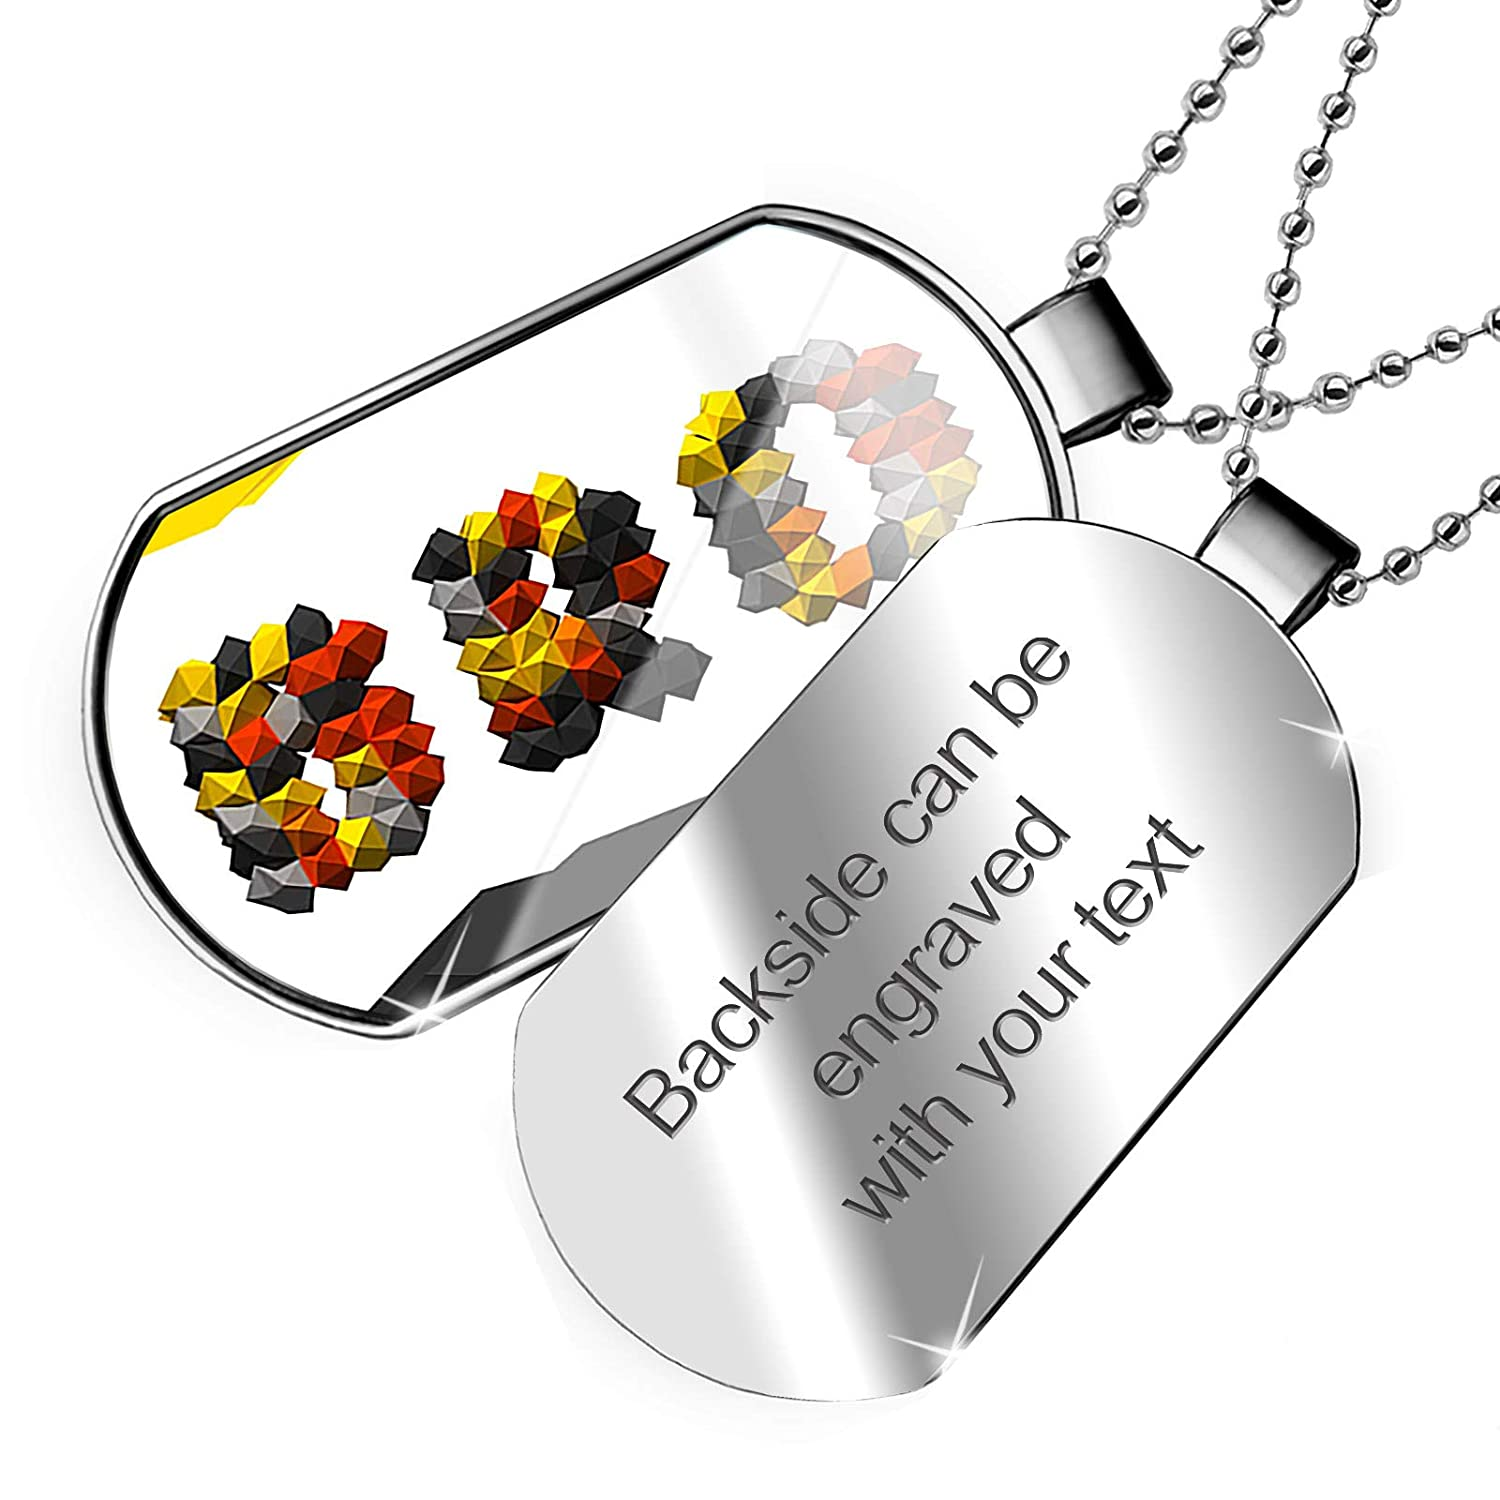 NEONBLOND Personalized Name Engraved Bro Color Geometric Shapes Dogtag Necklace